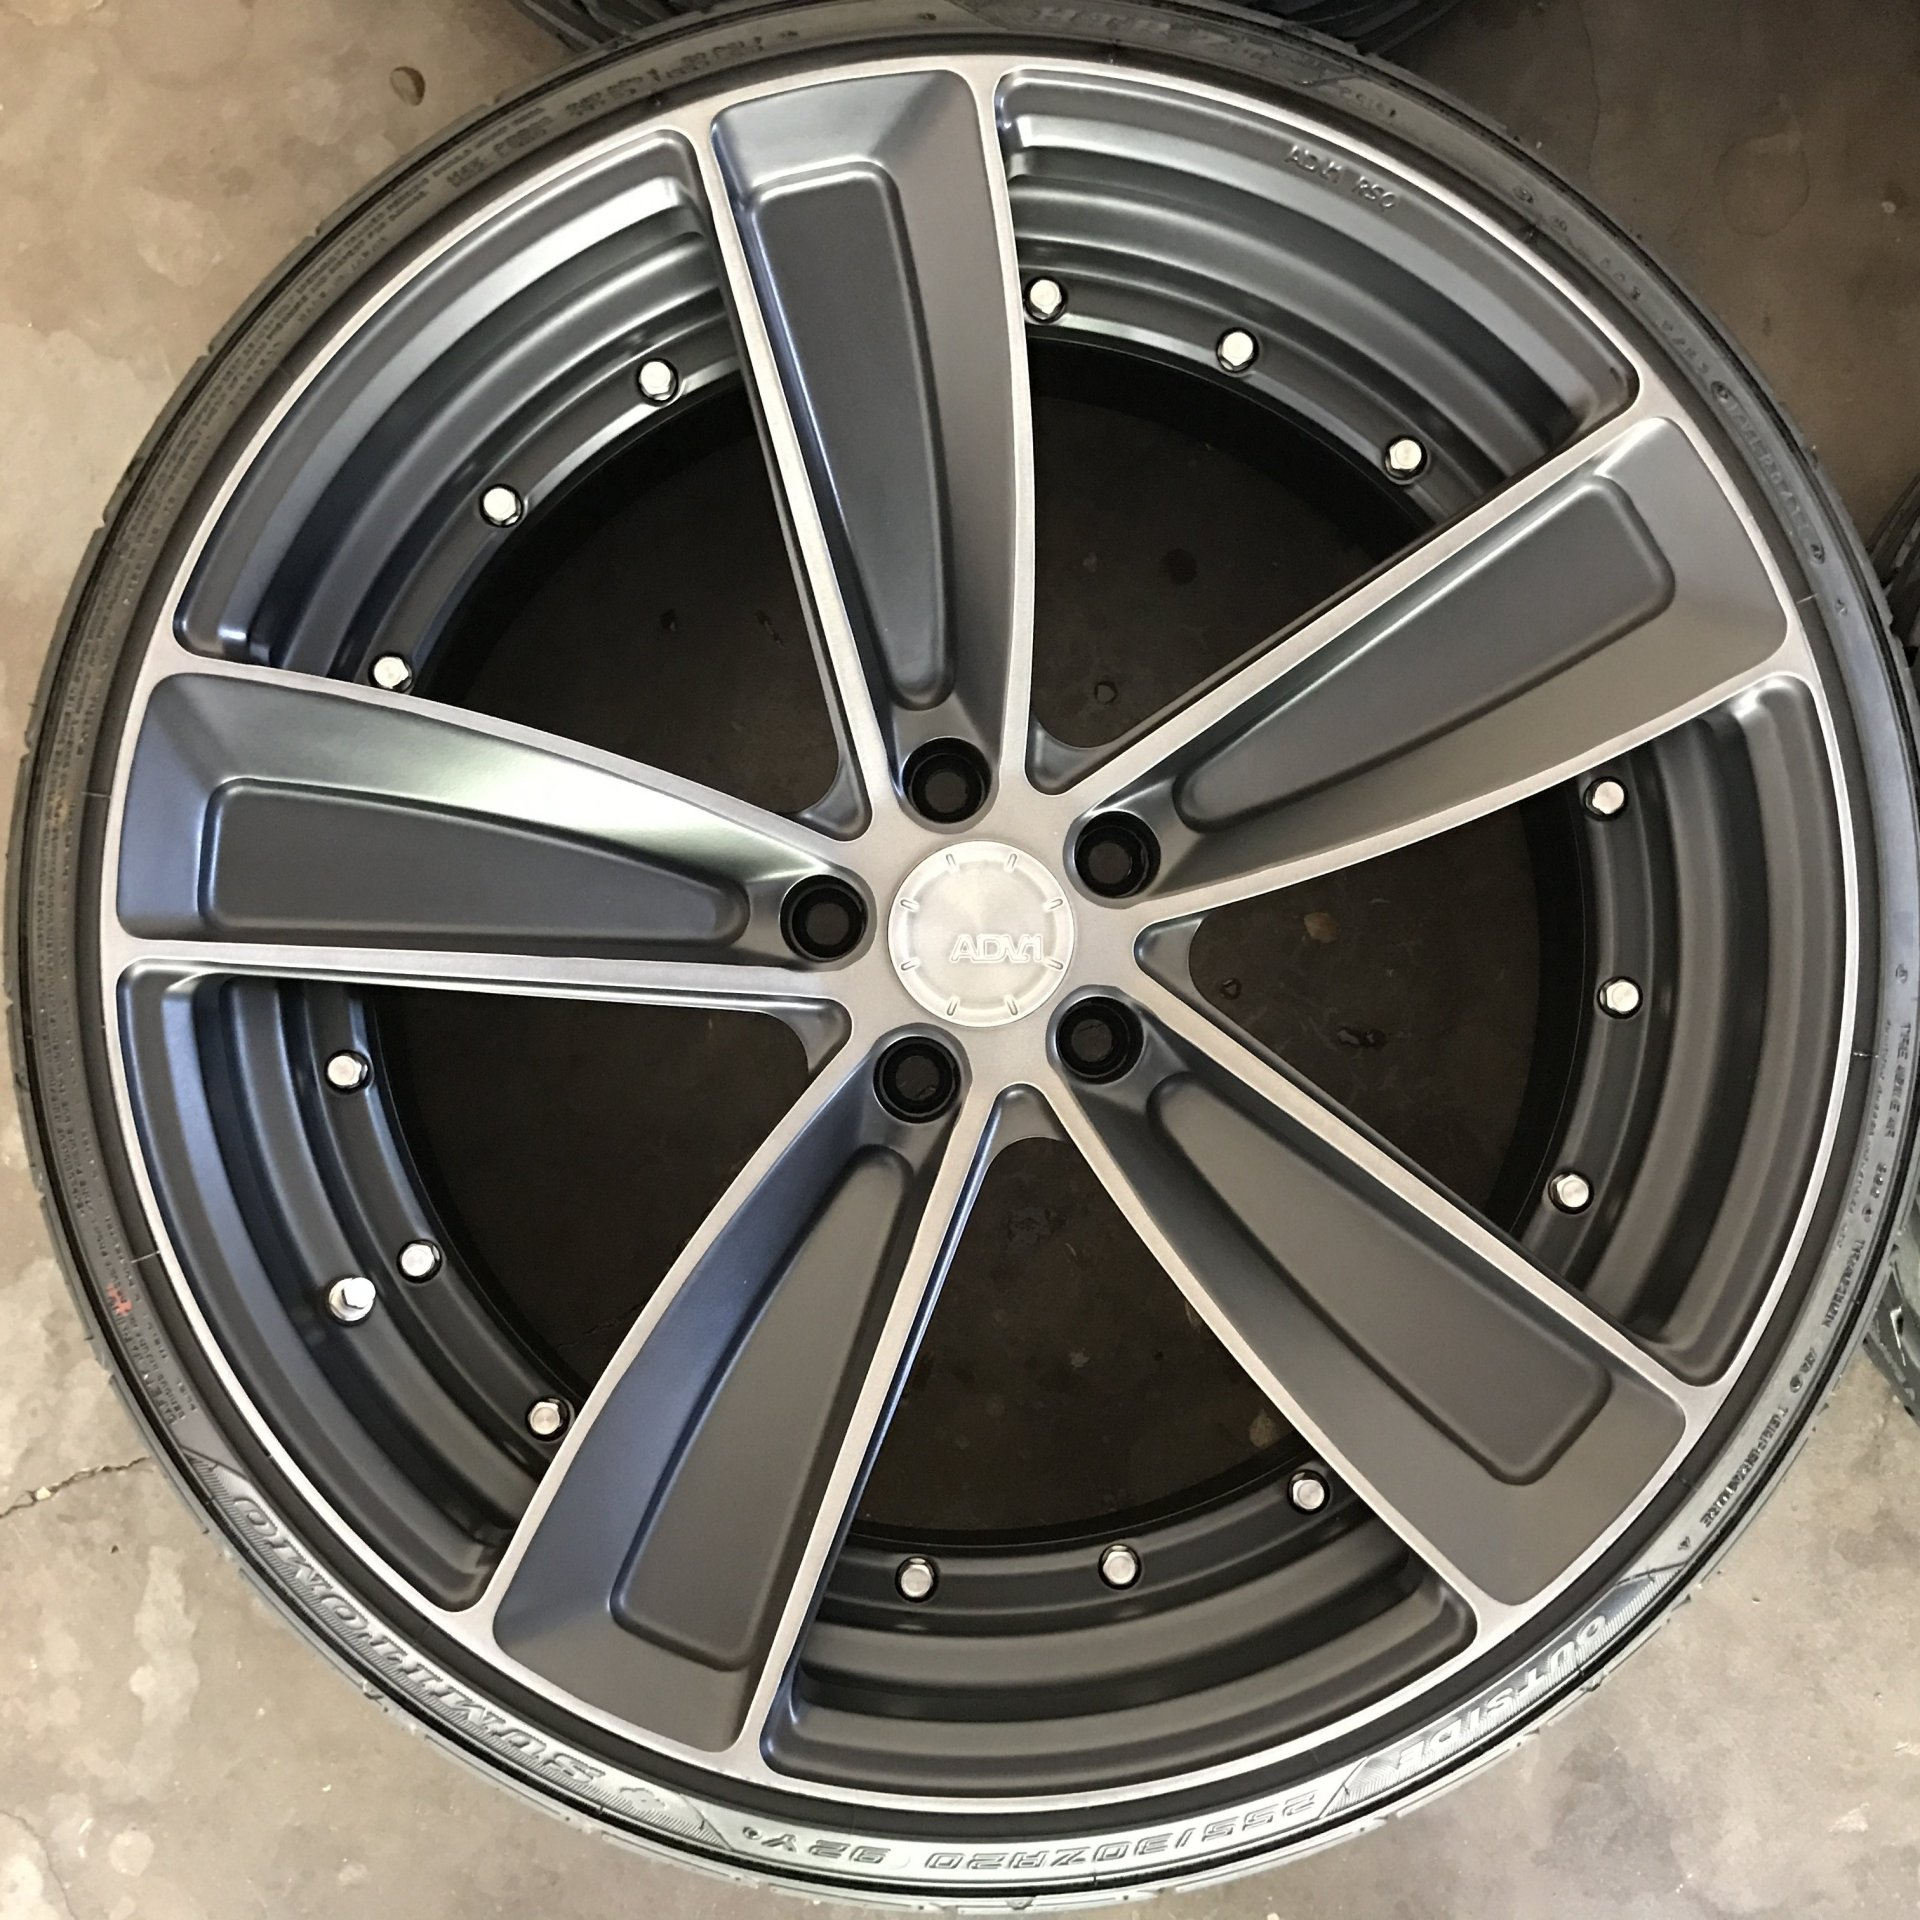 "Audi A4 For Sale: ADV.1 RSQ2 SL MV.2 20x10.5"" Wheel Set"